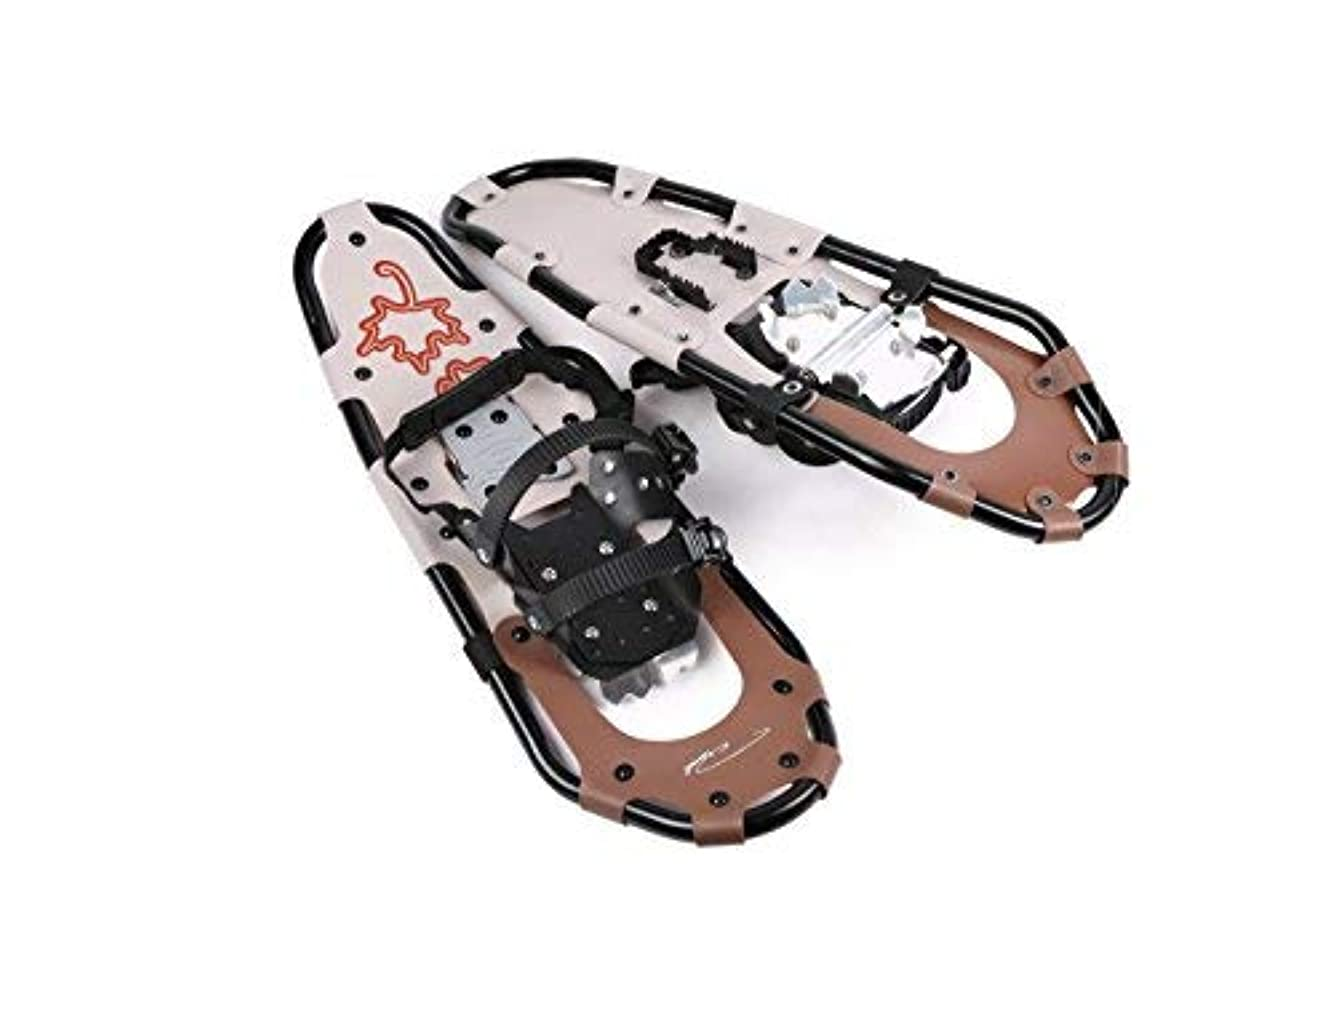 メイト思春期の繁雑Pansel Performance Light Weight Snowshoes for Men Women Kids (Brown Small) [並行輸入品]